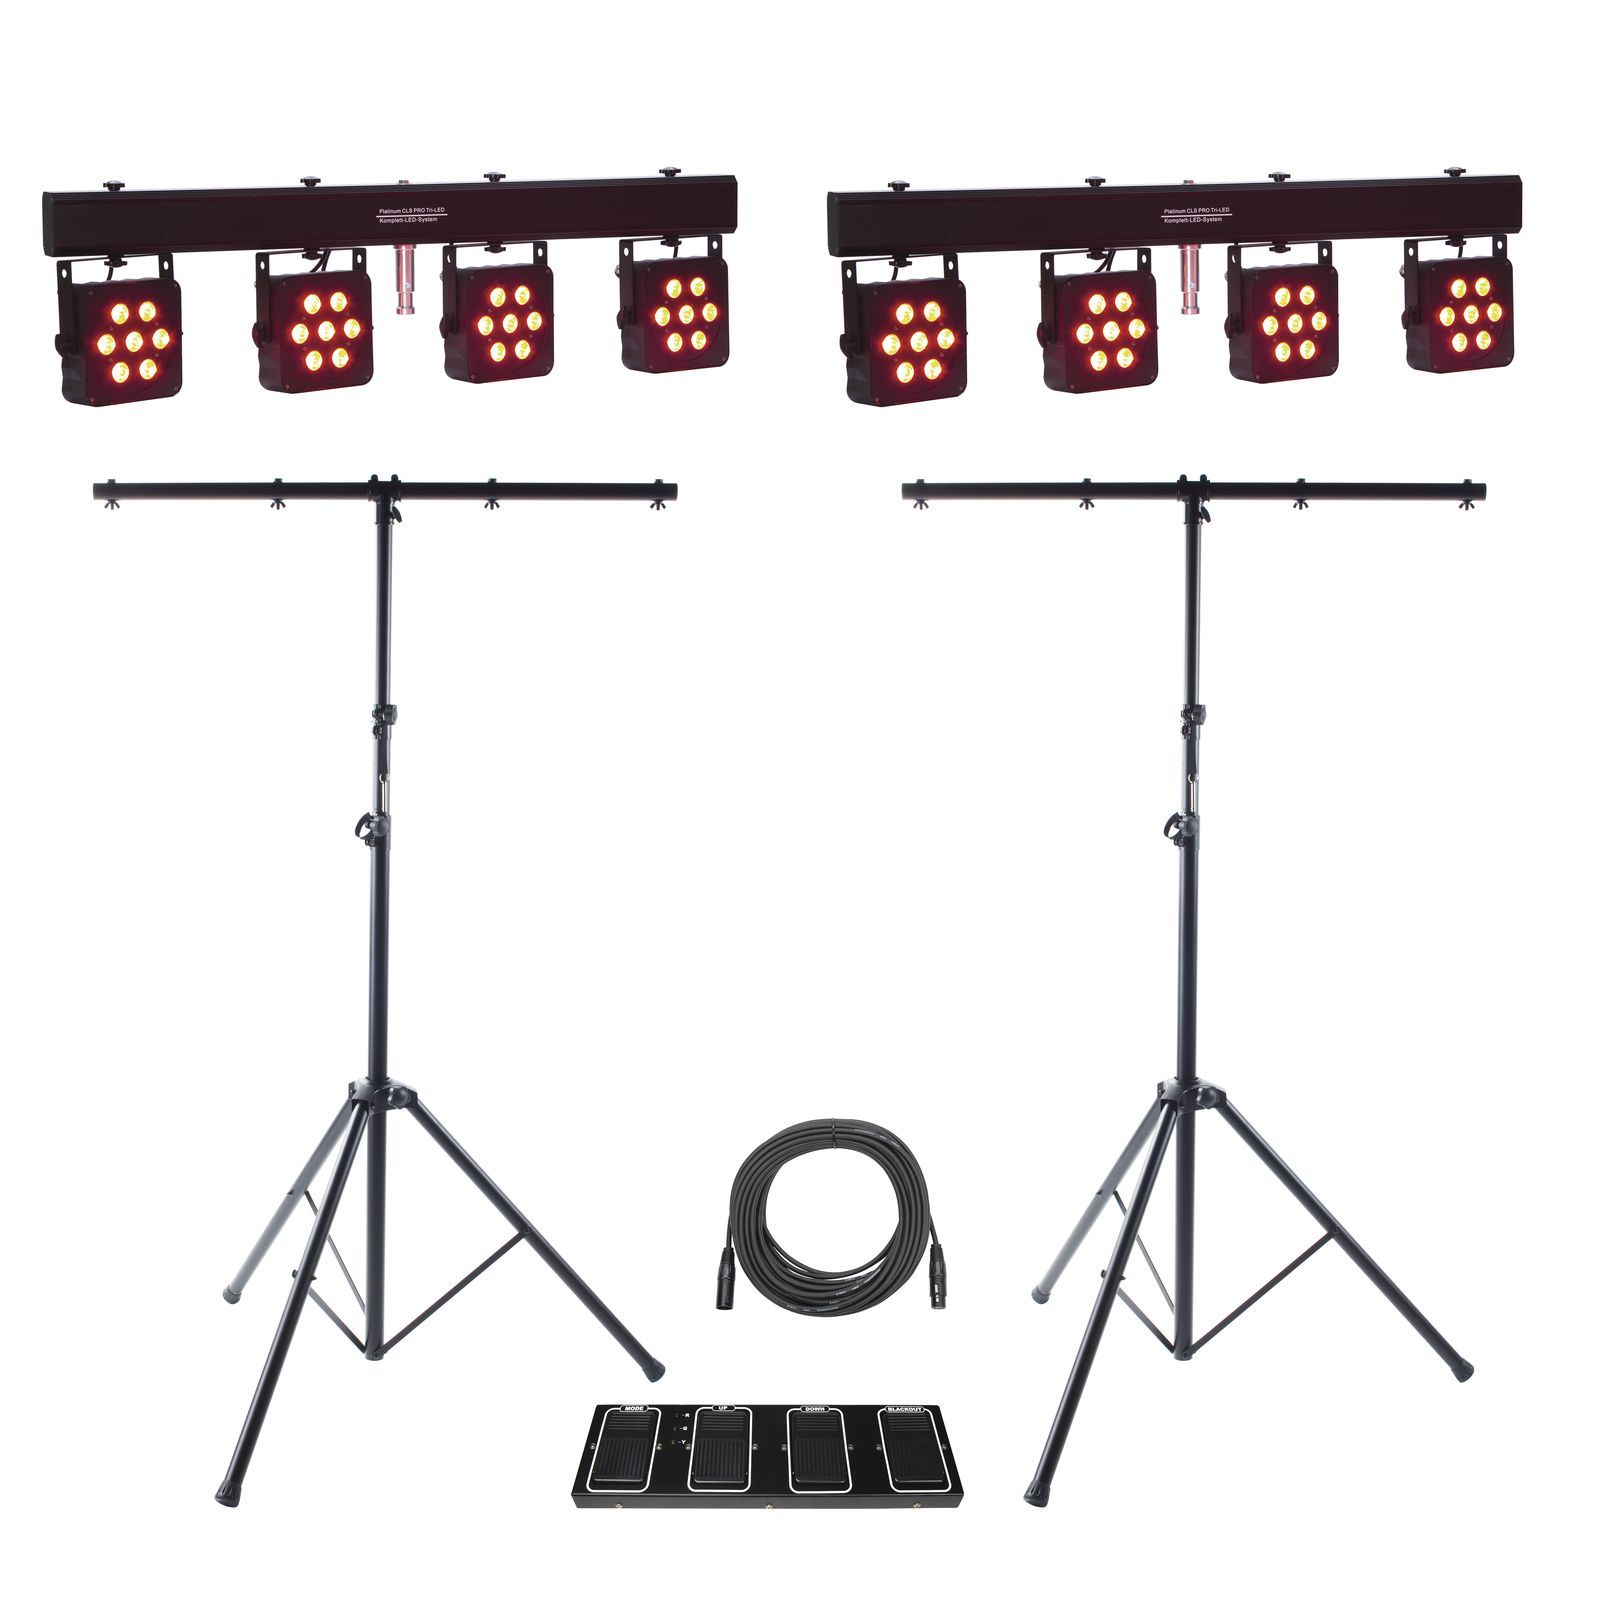 LightmaXX School Set 2 Product Image